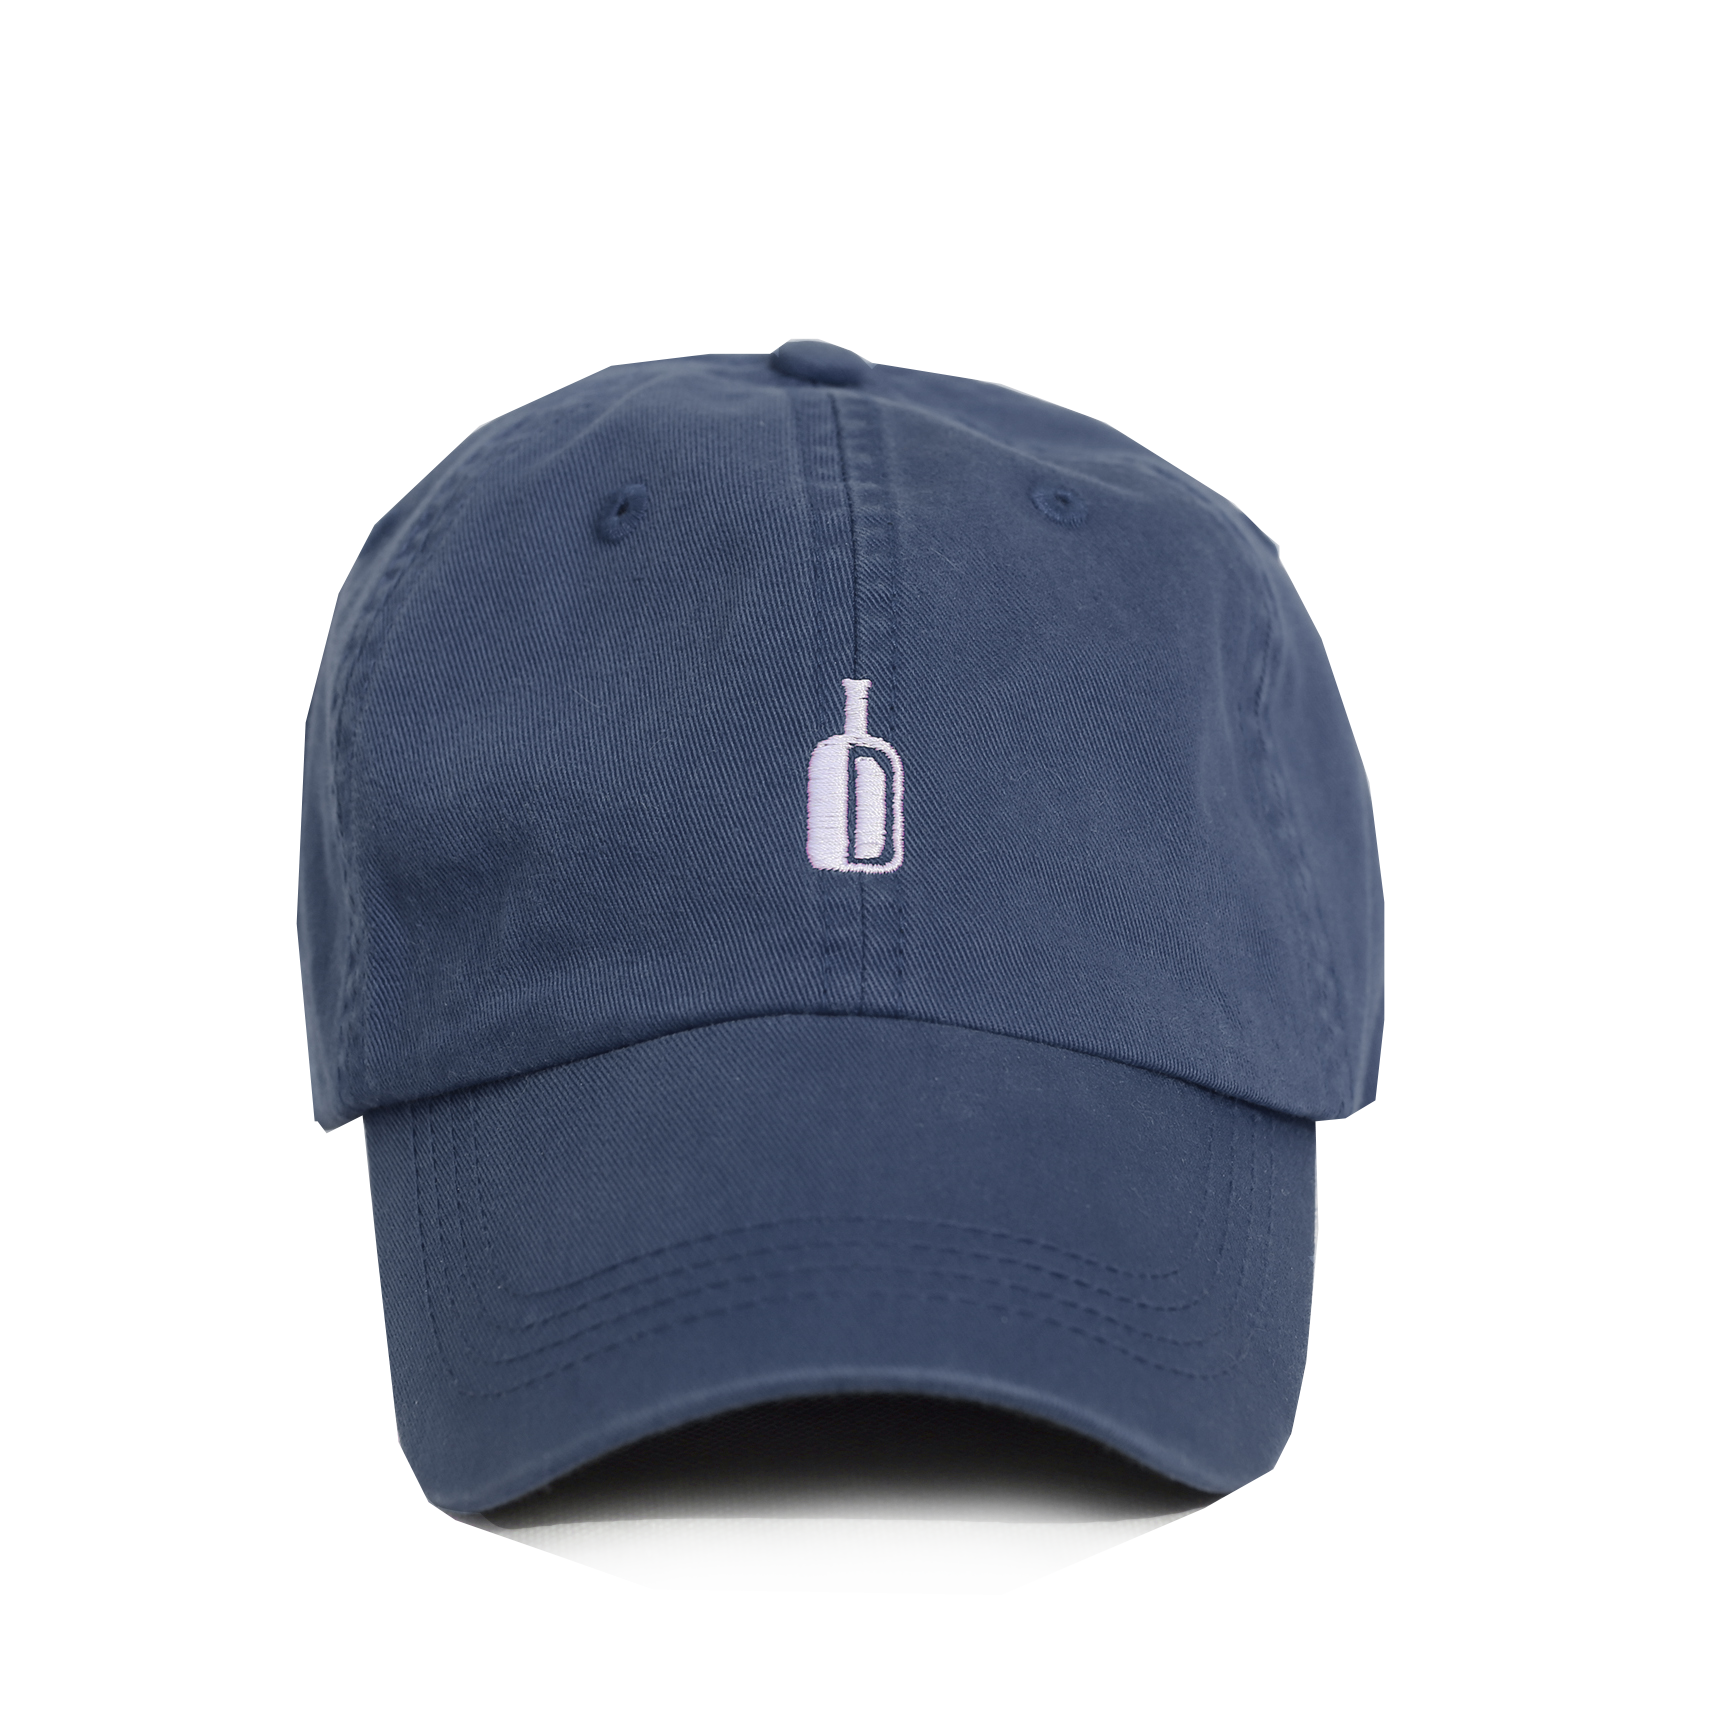 DIXIE RESERVE BOURBON WHISKEY 90 PROOF HAT